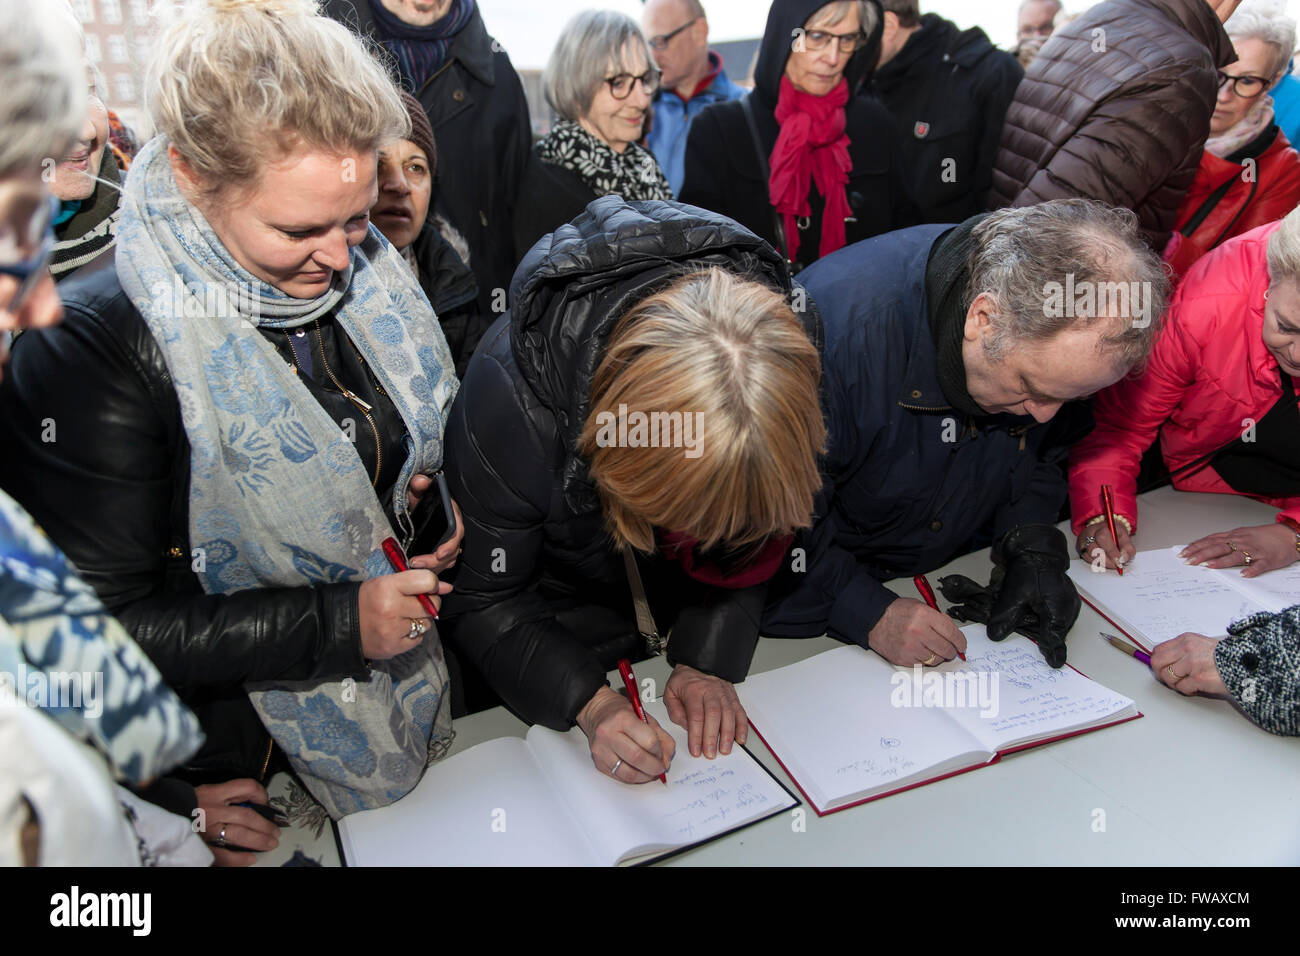 Copenhagen, Denmark, April 2nd, 2016. Many people participating in the memorial gathering at the Parliament Square - Stock Image